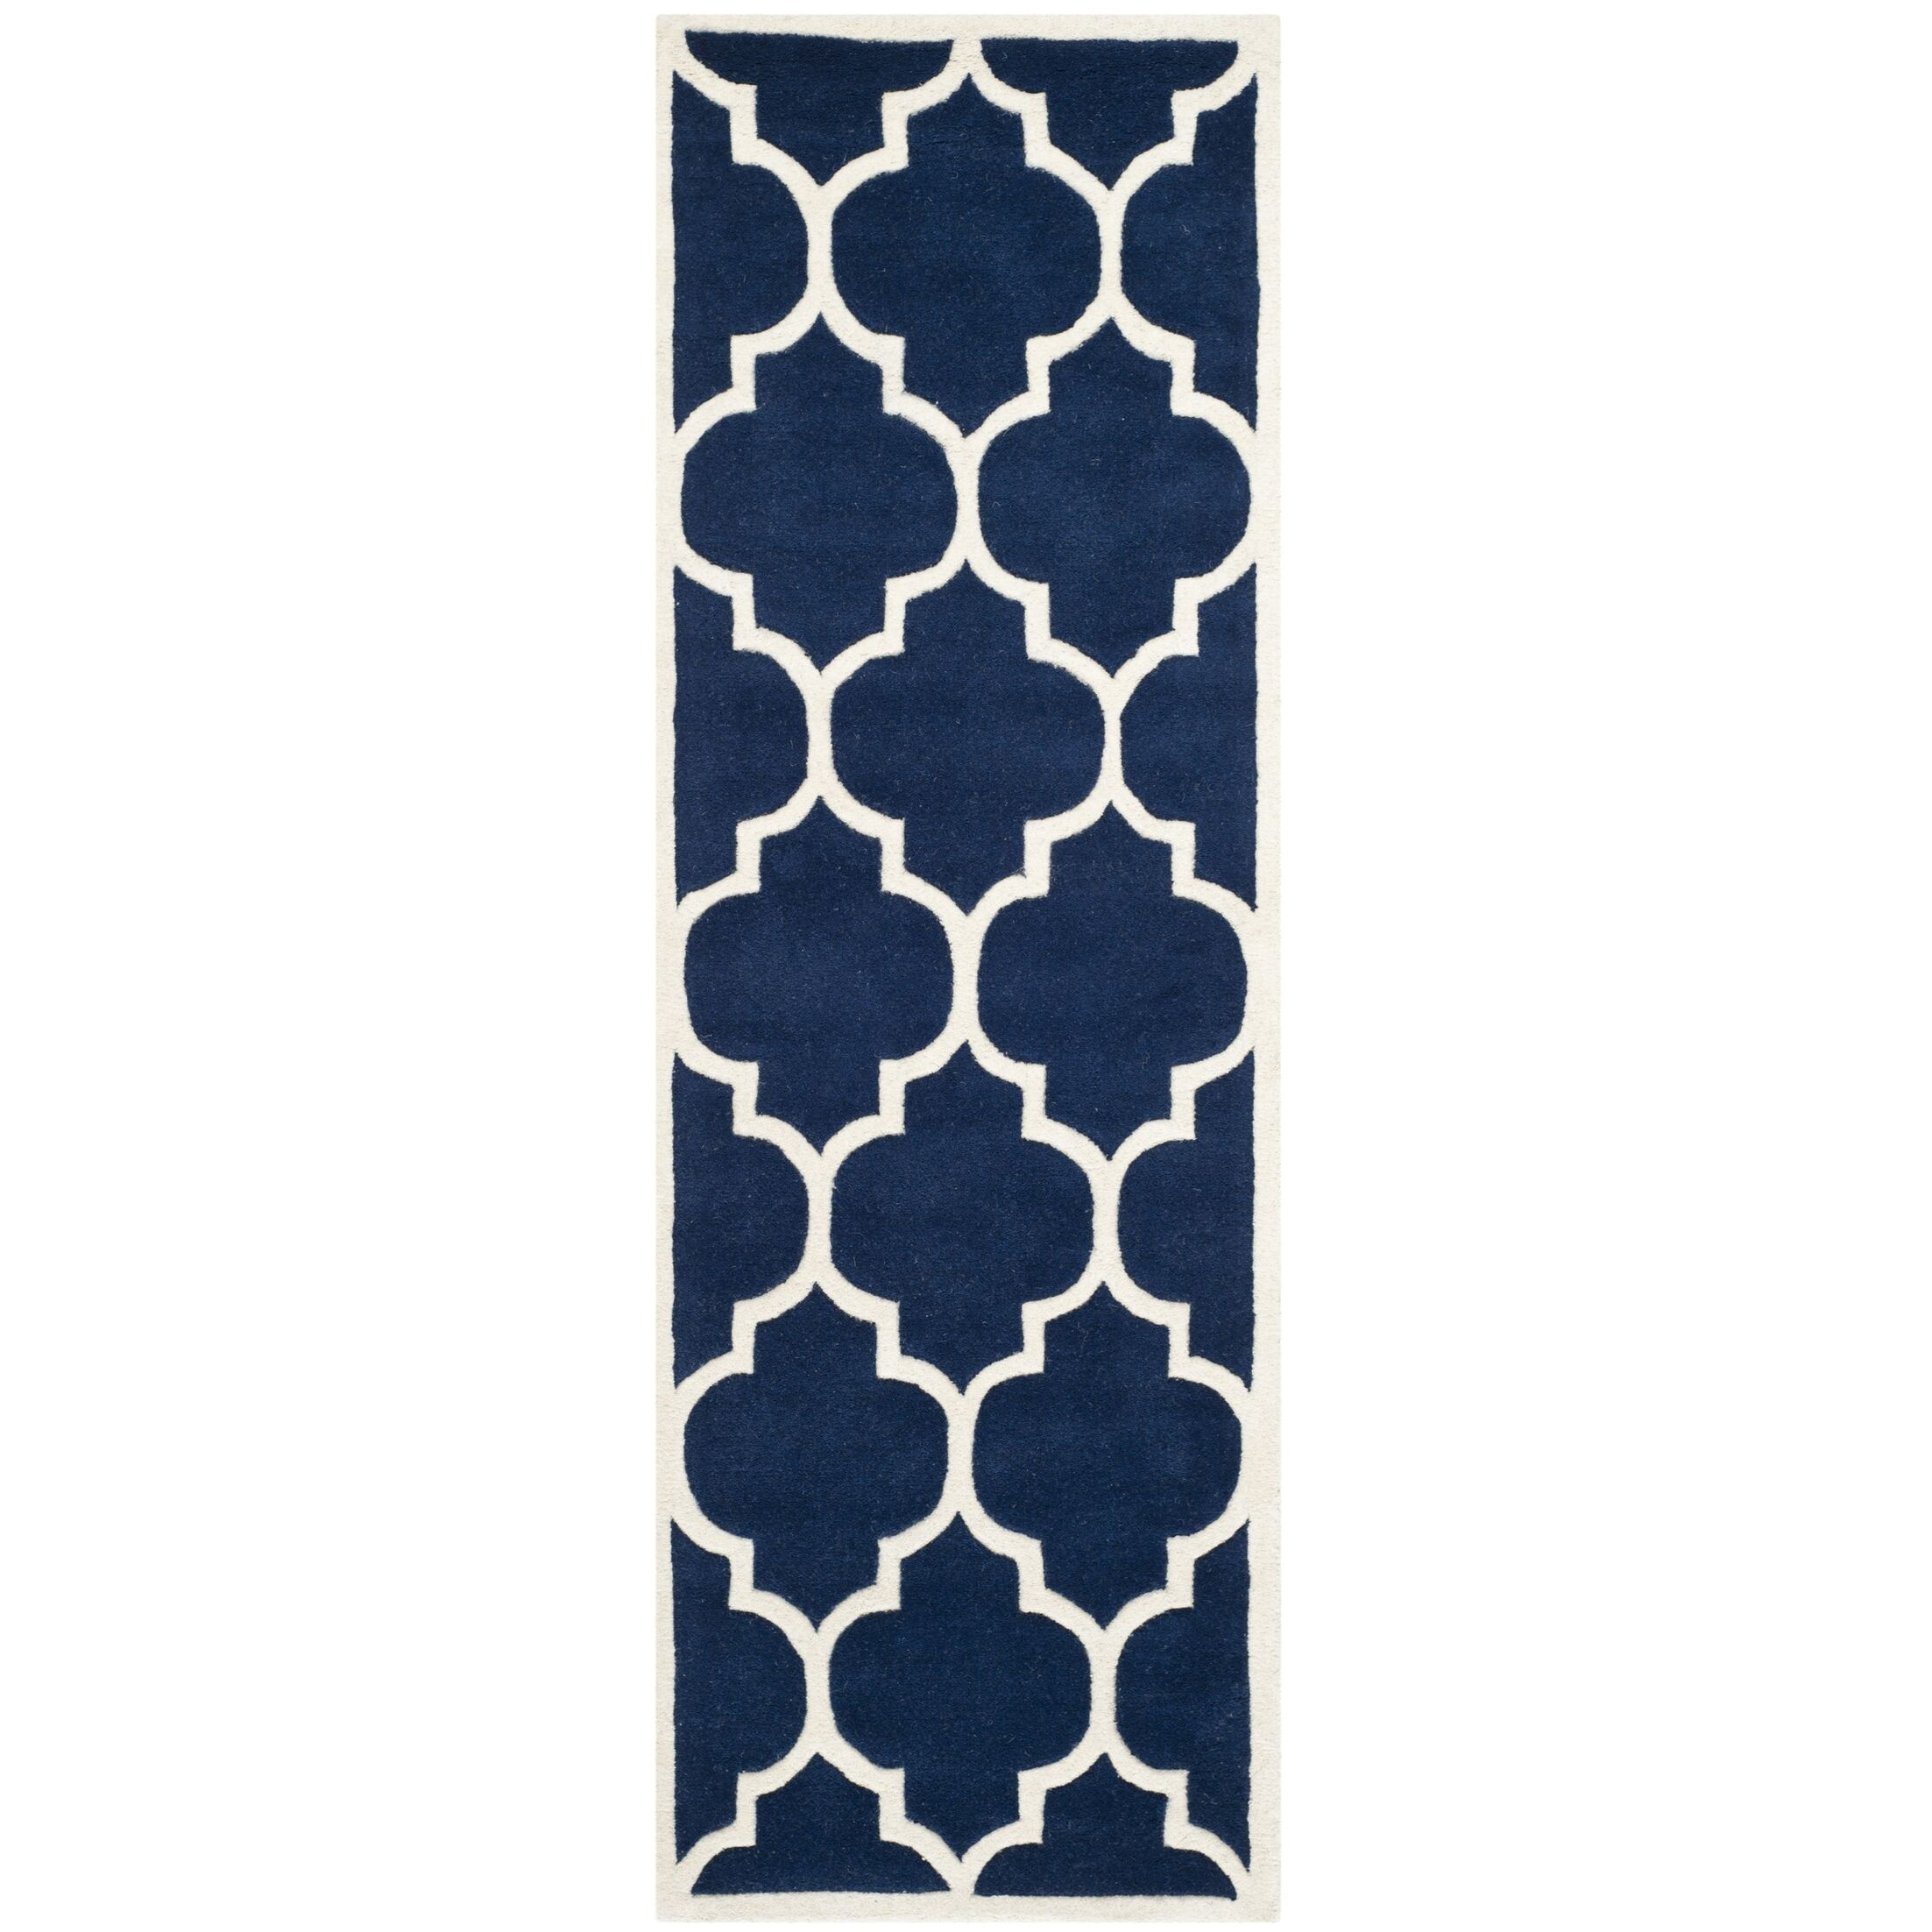 Wilkin Hand-Tufted Dark Blue/Ivory Area Rug Rug Size: Runner 2'3